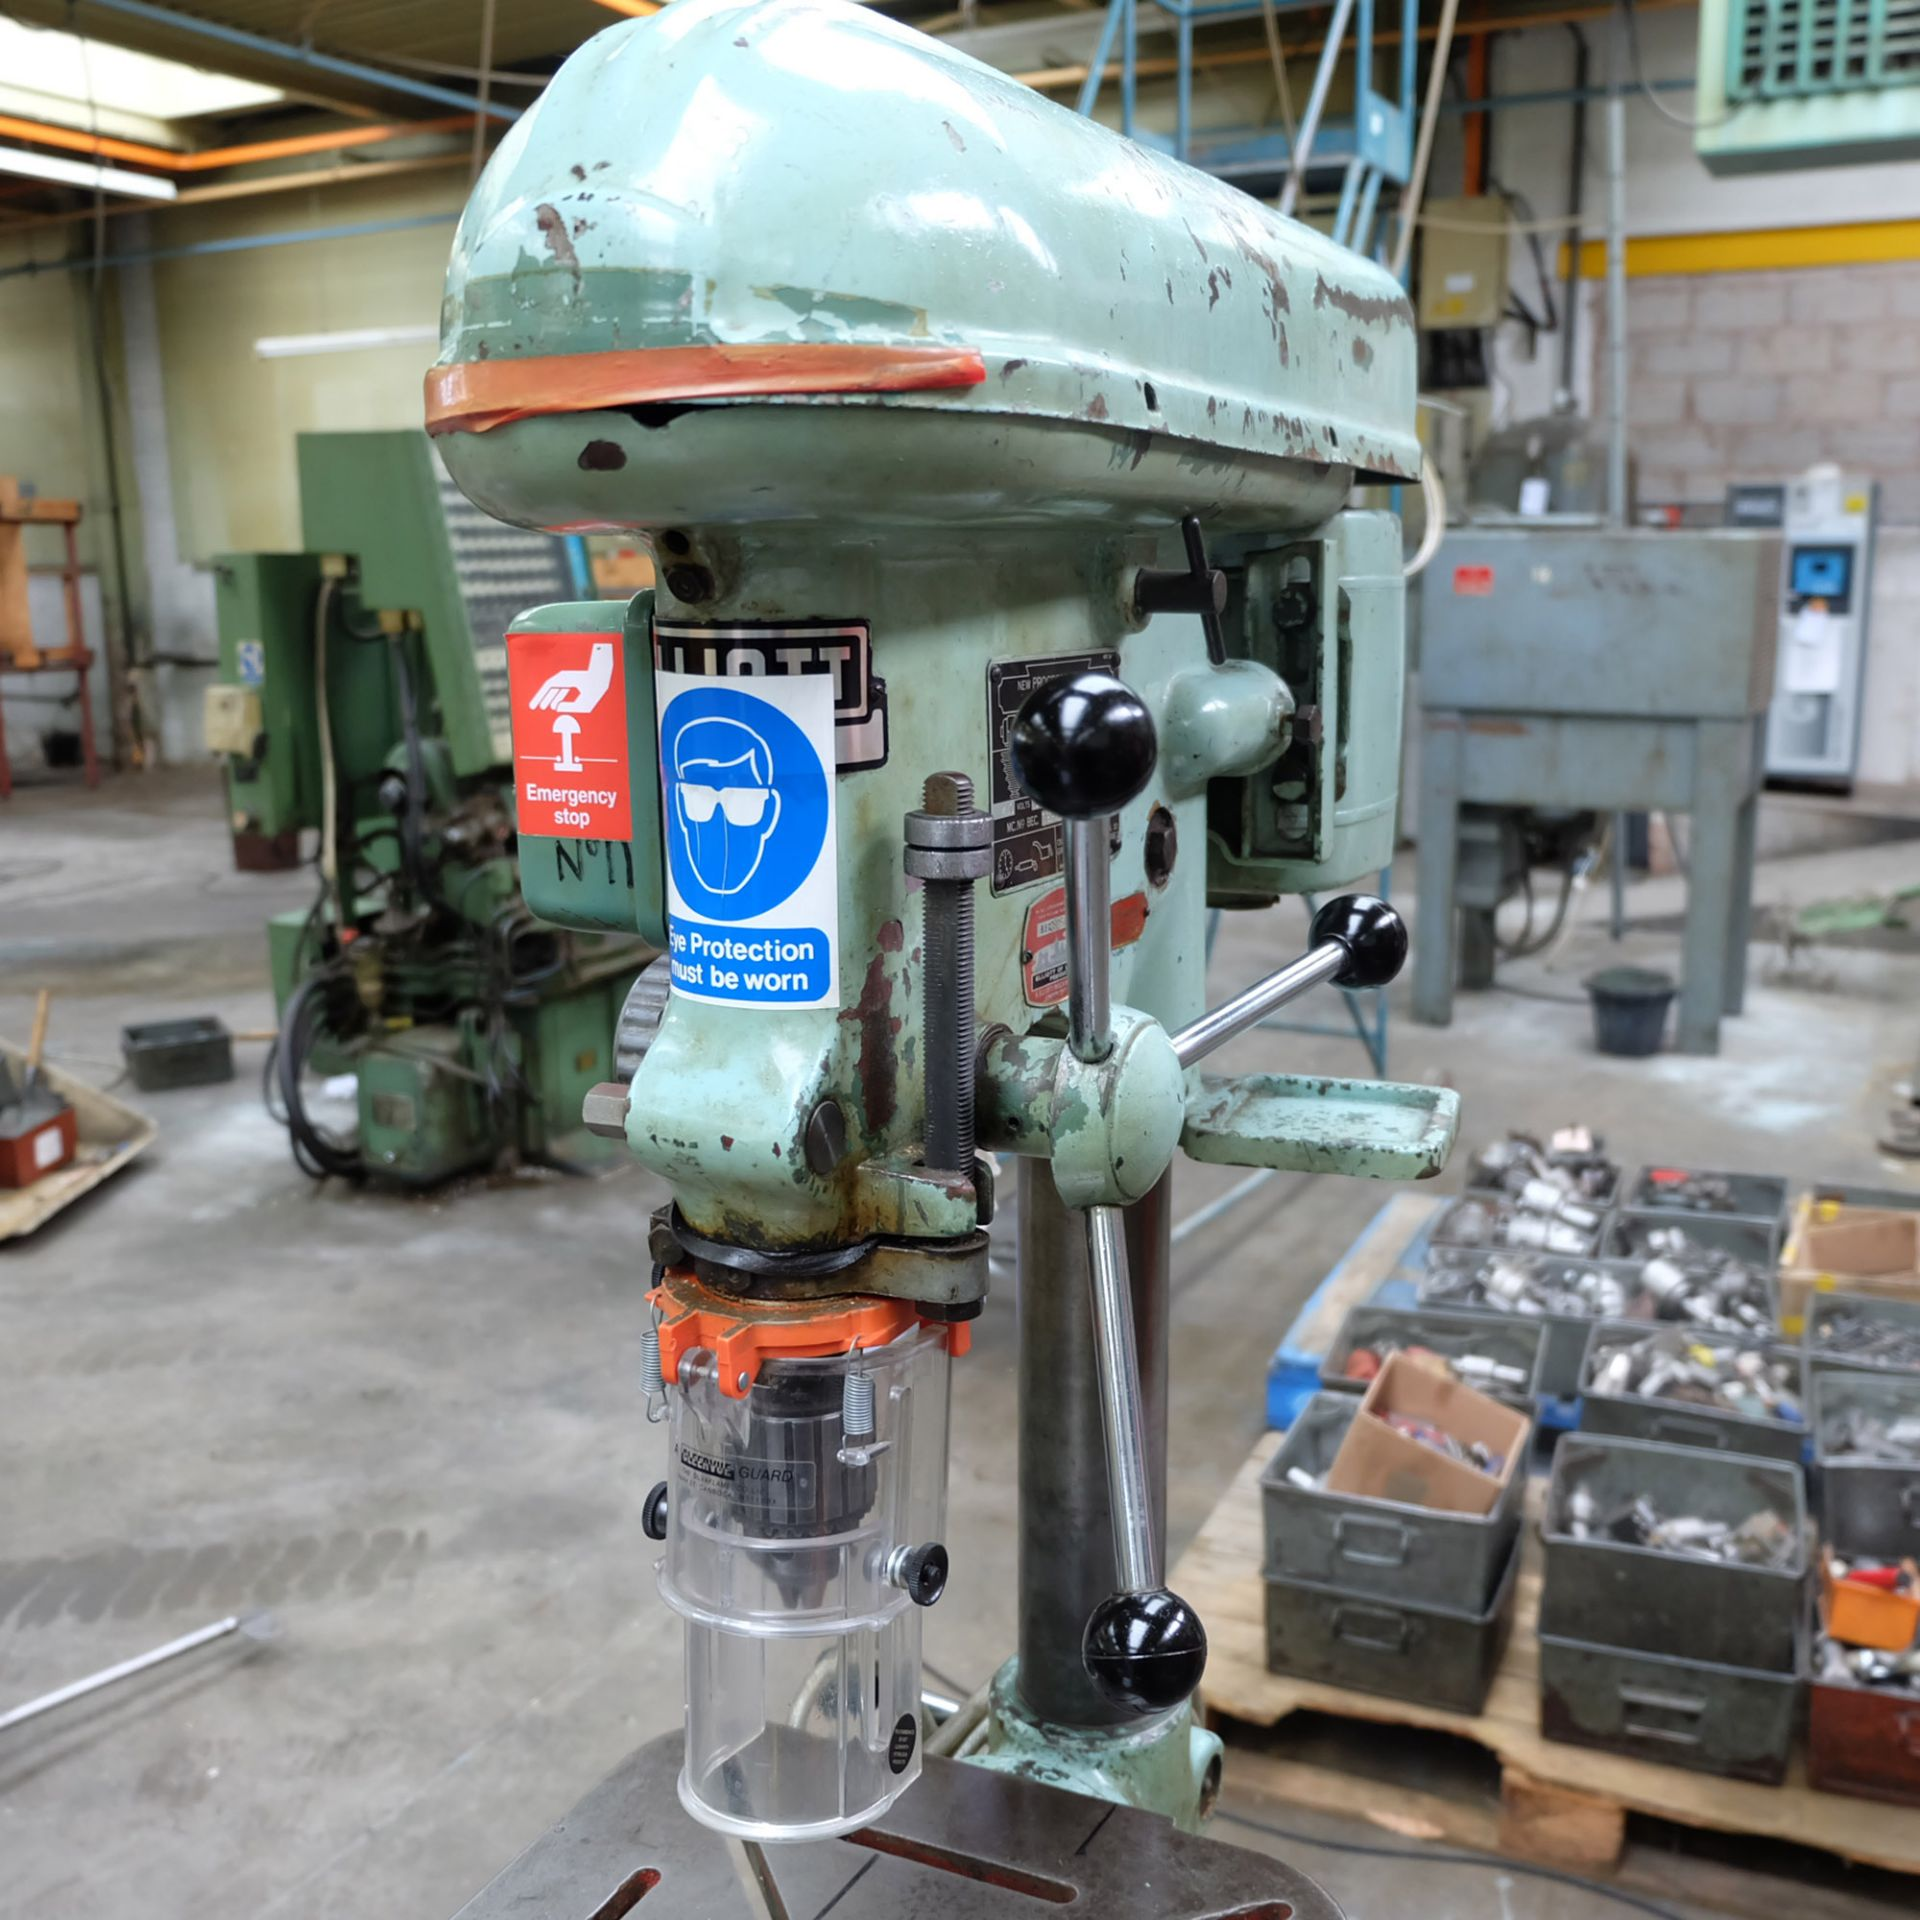 """Elliot Progress No.1 Bench Drill. 1/2"""" Drilling Capacity. Spindle Speeds: 340-2580rpm. - Image 2 of 4"""